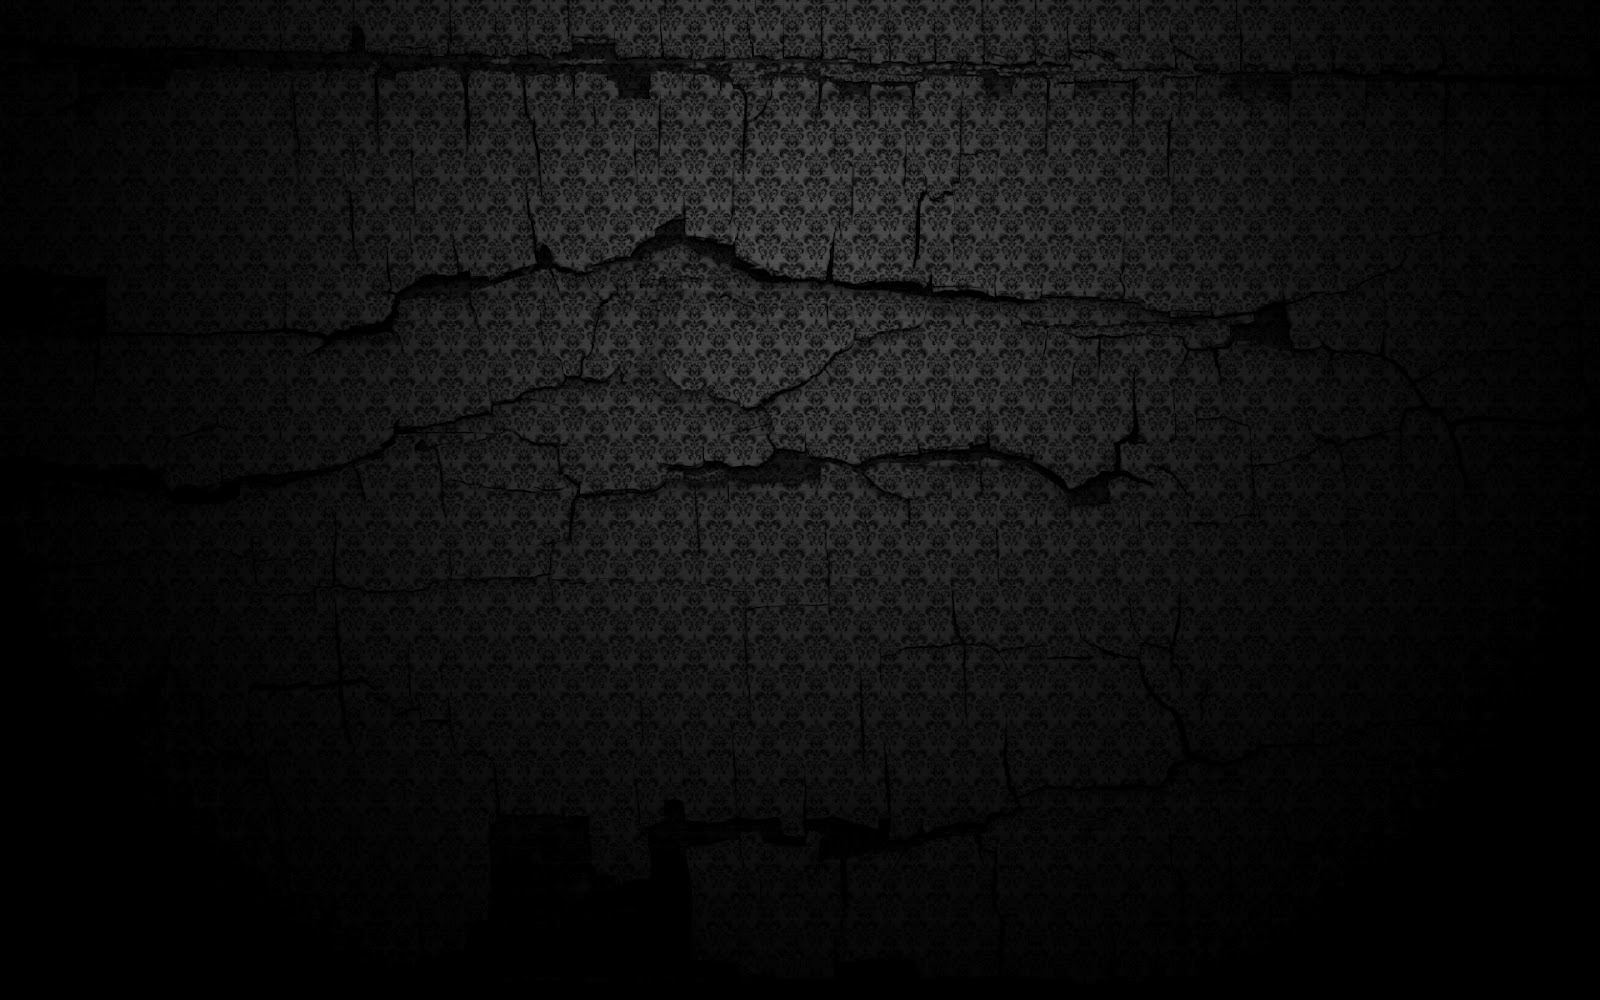 Dark Wall Paper Pattern HD Desktop Wallpaper 1600x1000